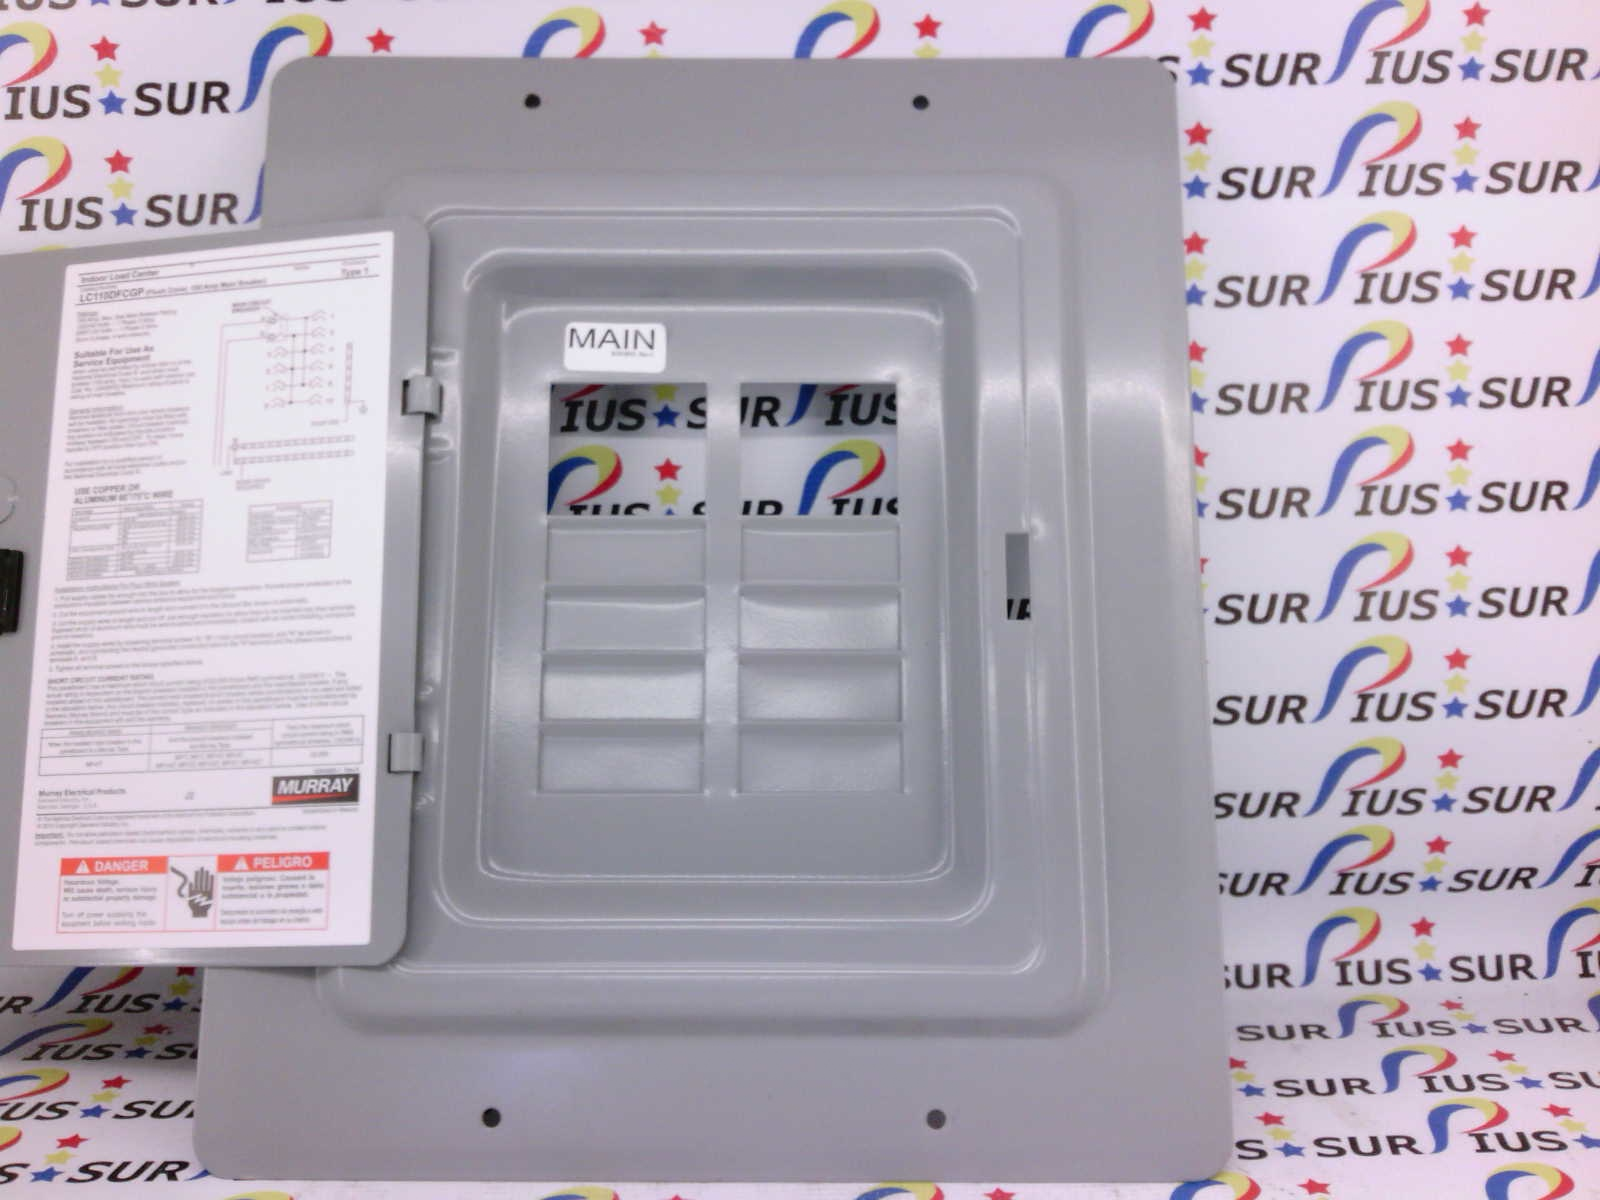 Murray Lc110dfcgp 10 Space Circuit Breaker Box Load Center Front Cover Door